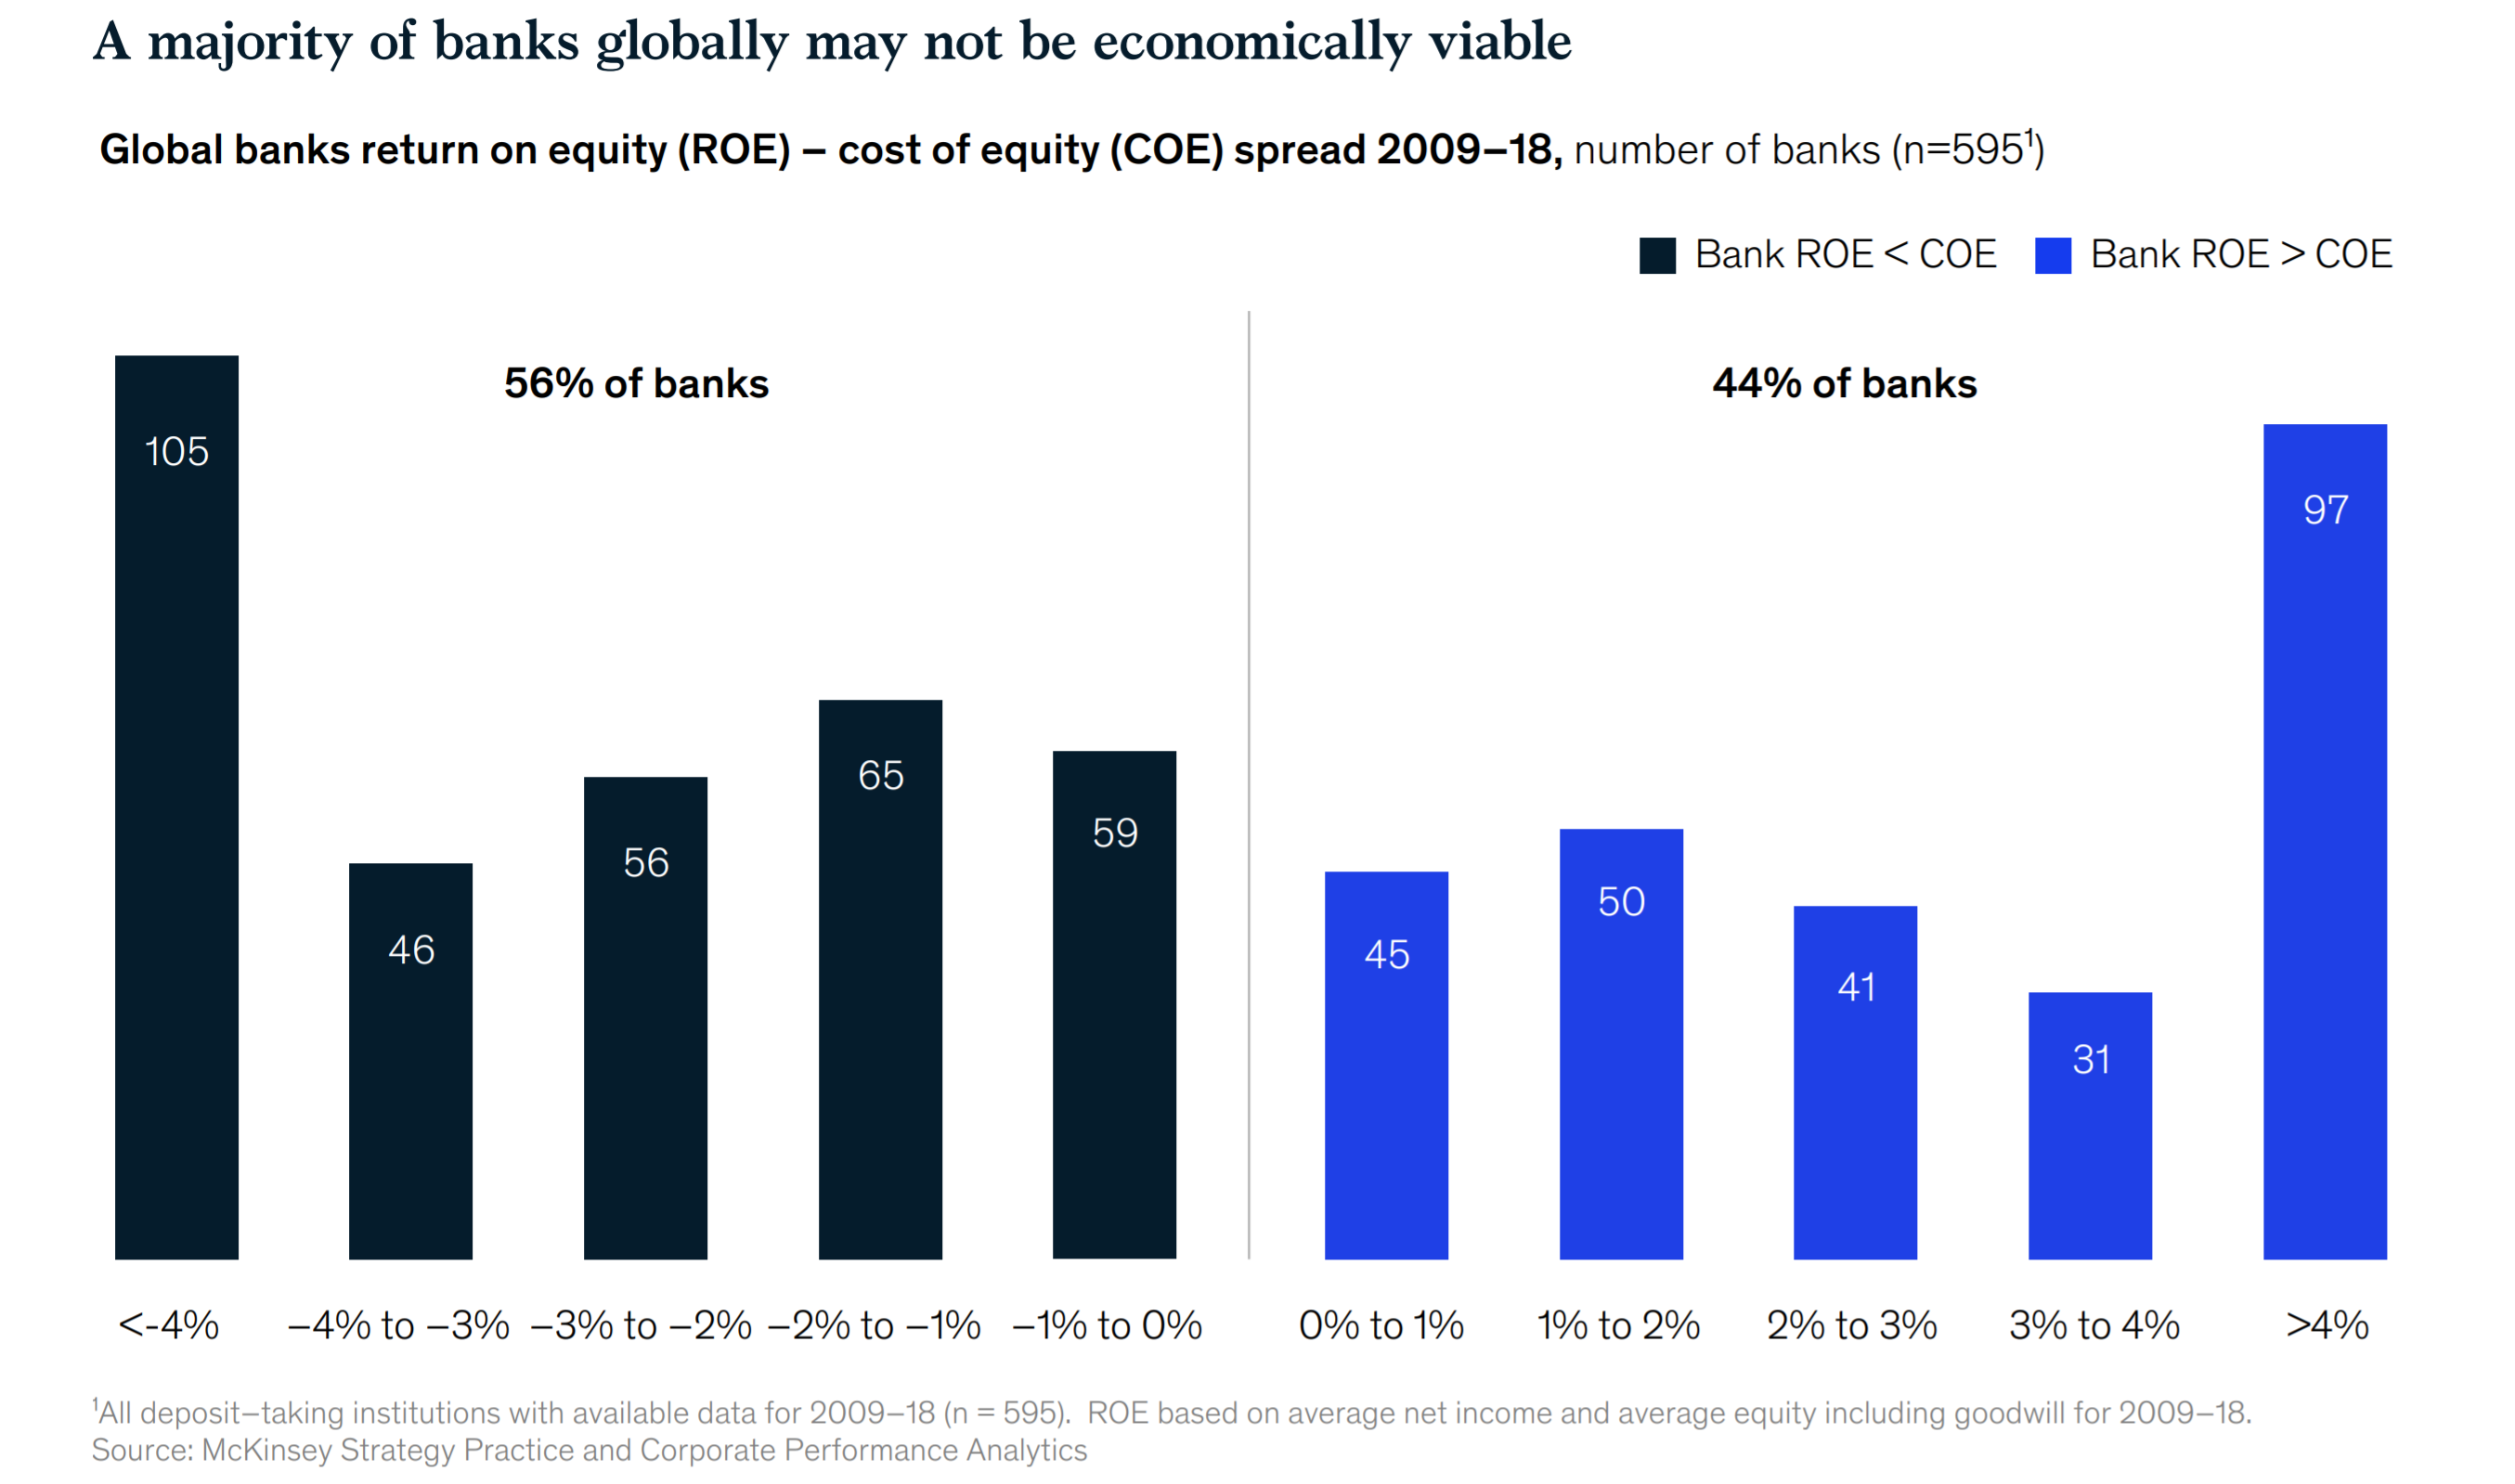 McKinsey: Majority of Banks May Not Be Economically Viable